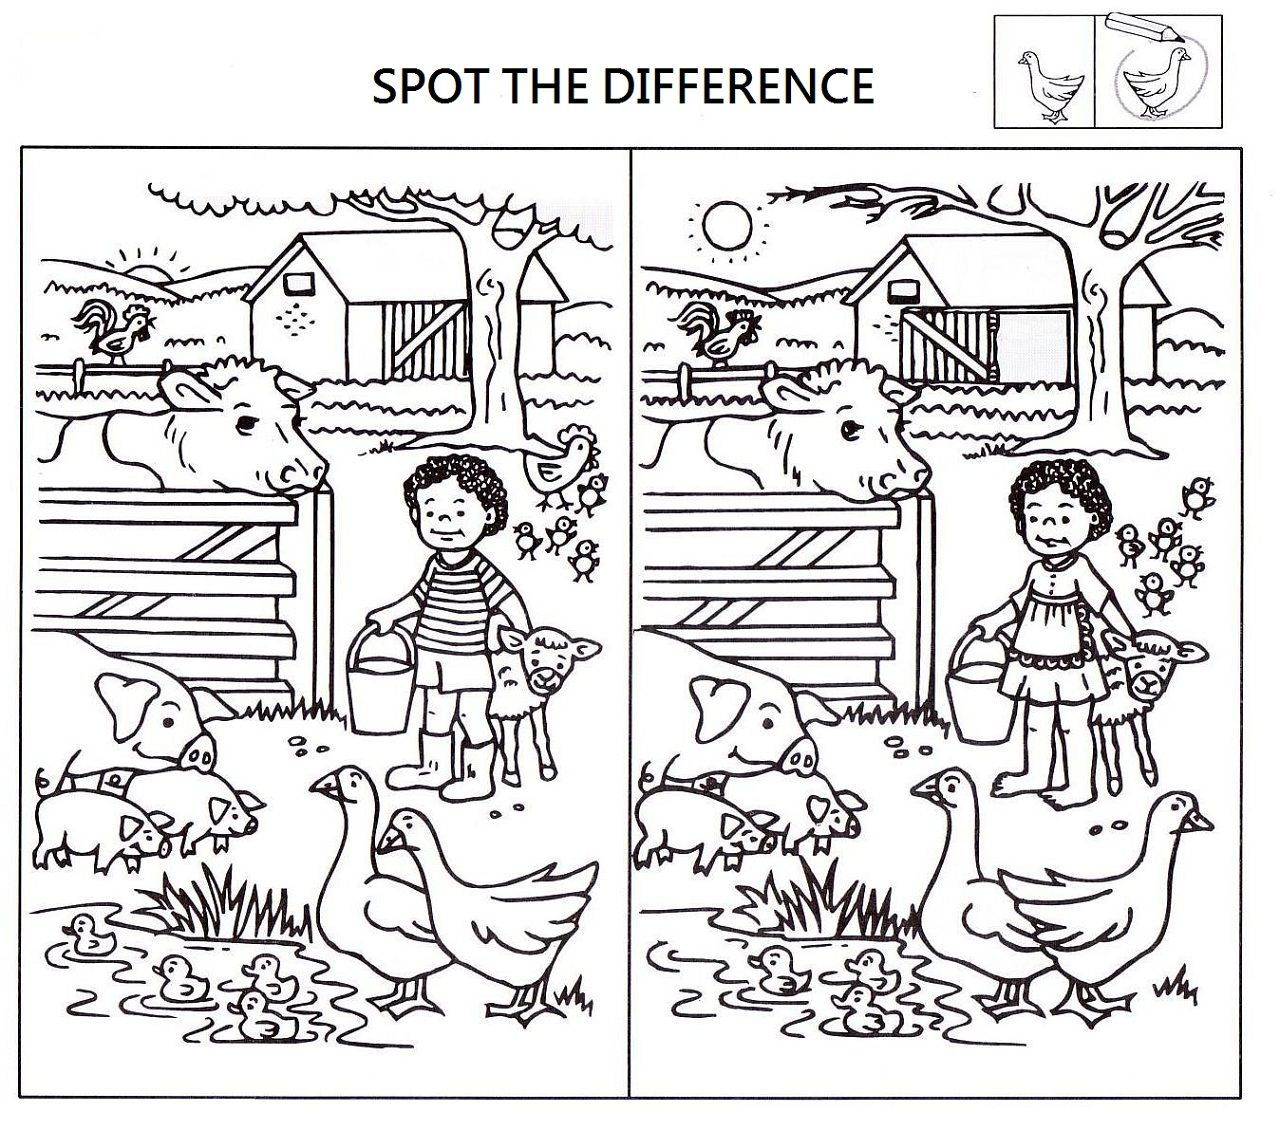 Worksheets Spot The Difference Worksheets spot the difference worksheets for kids activity shelter shelter